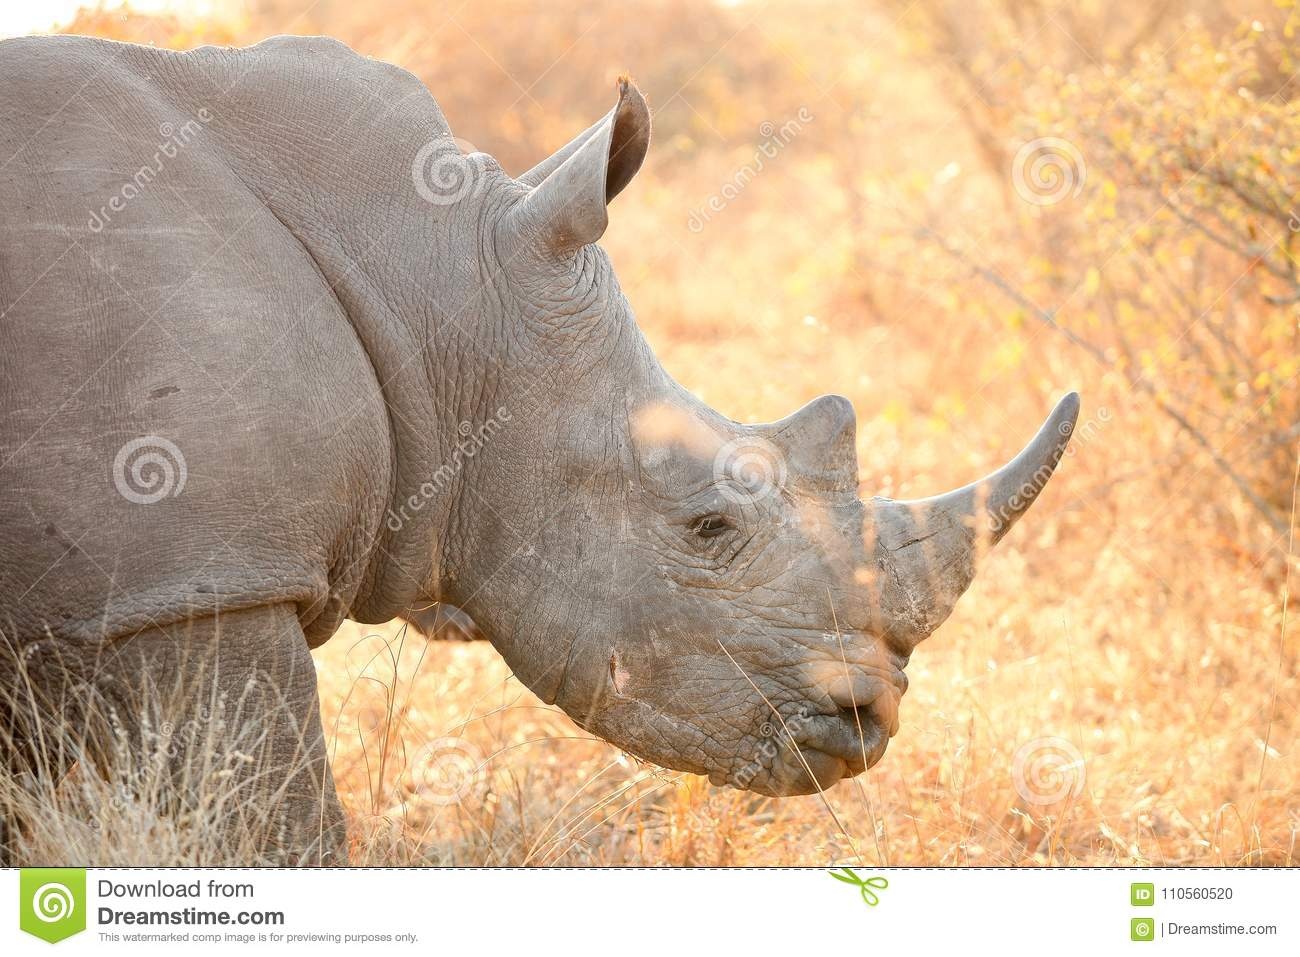 Side angle close up of the head of an African White Rhino in a South African game reserve